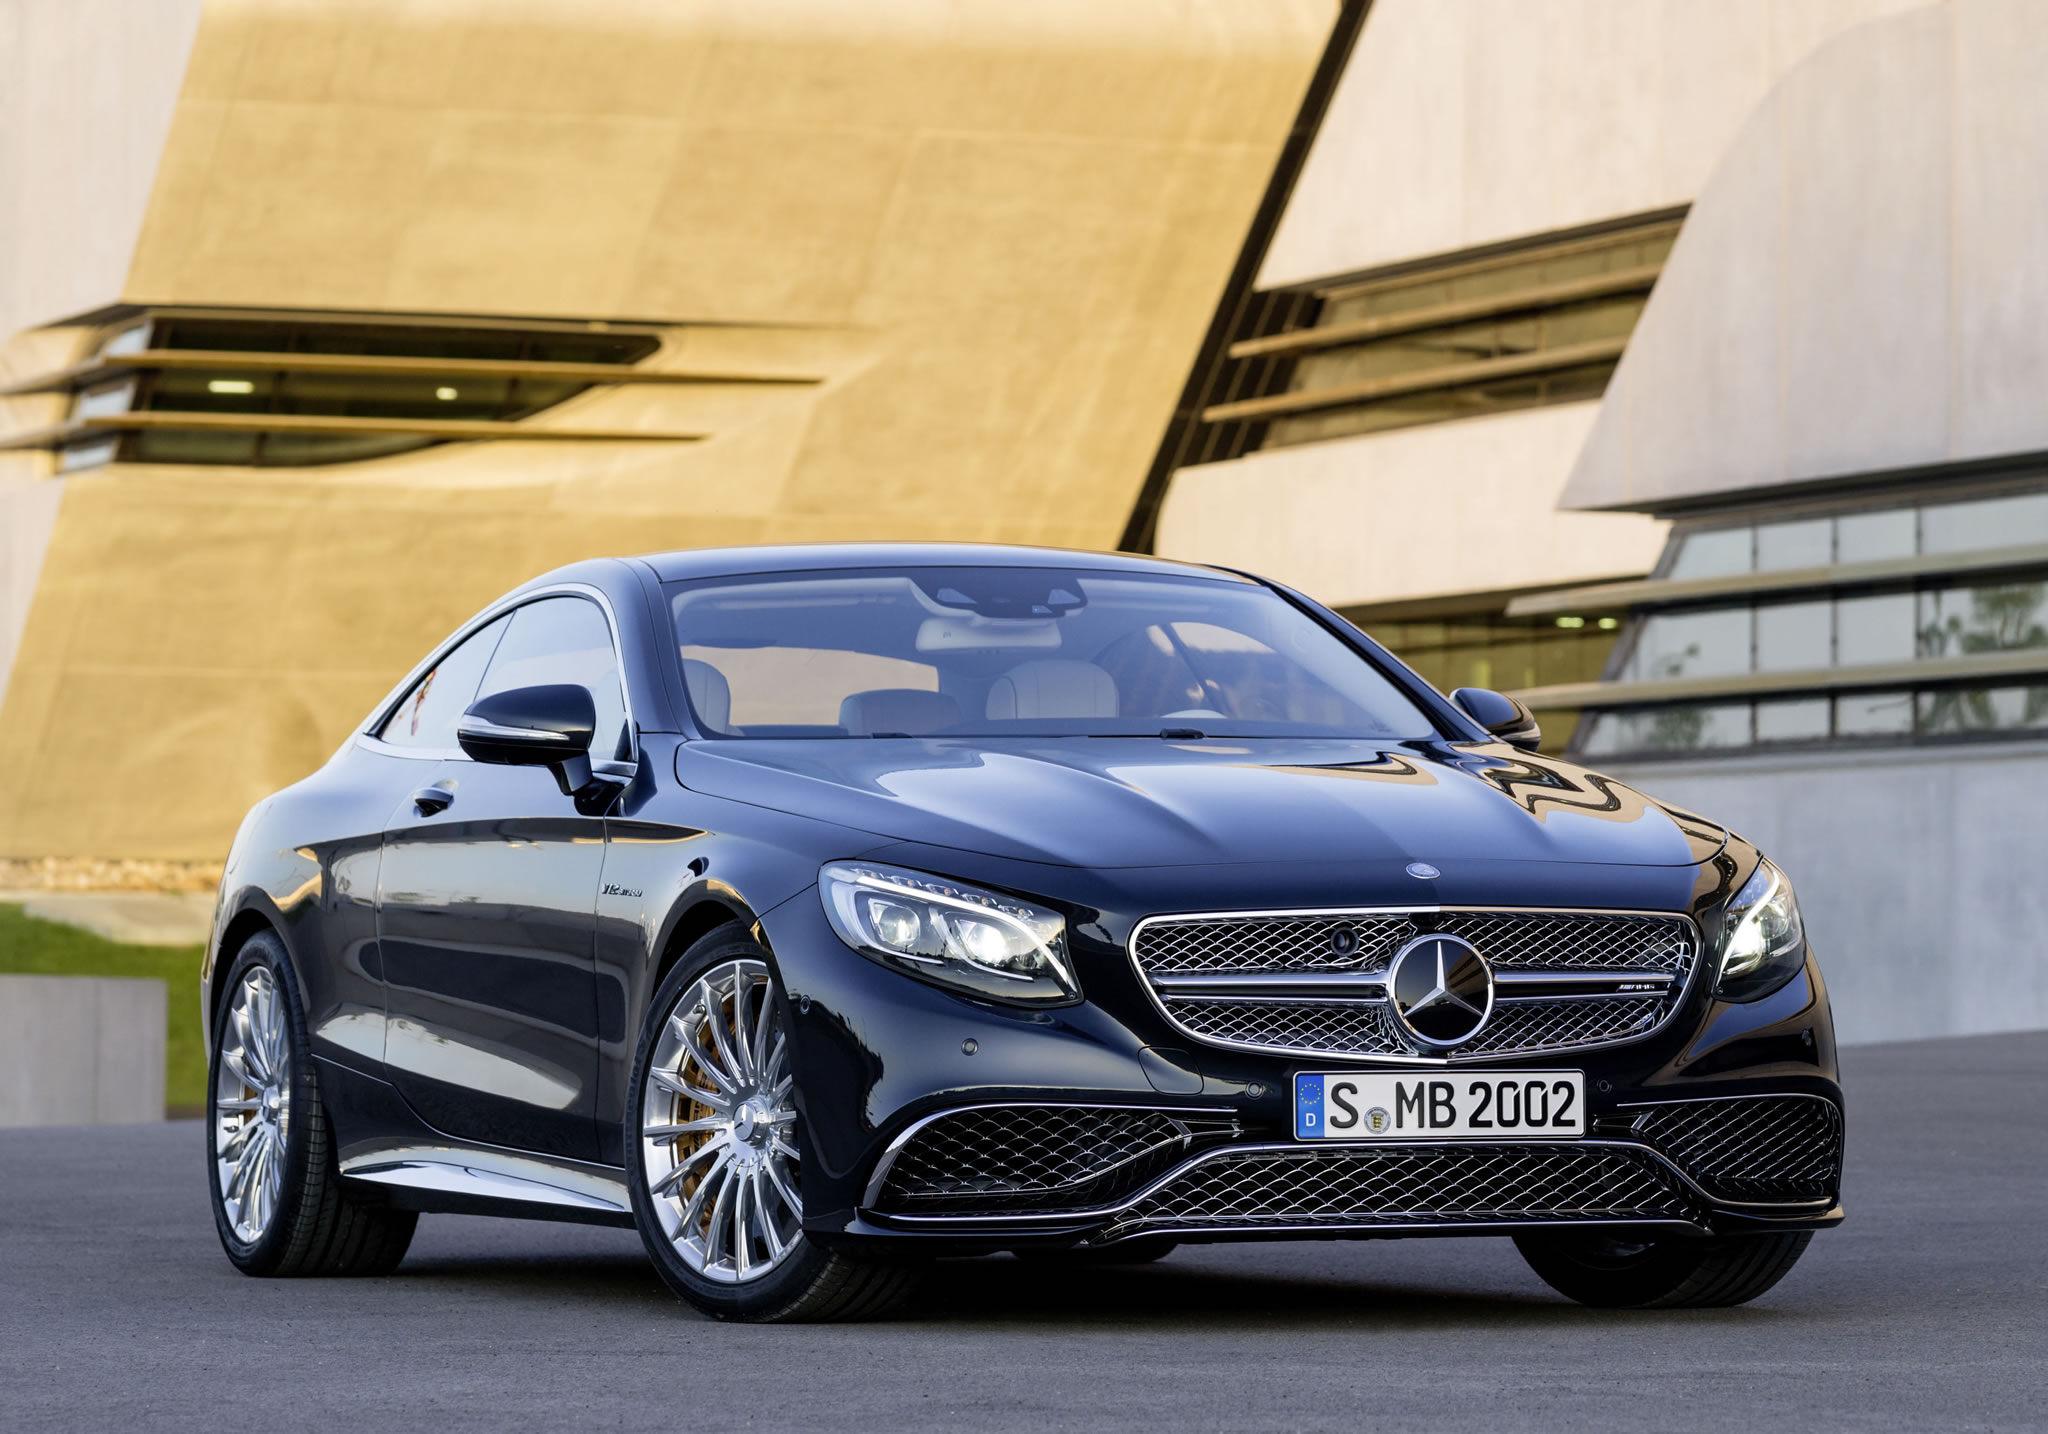 2015 mercedes benz s65 amg coupe front photo anthracite for 2015 mercedes benz s65